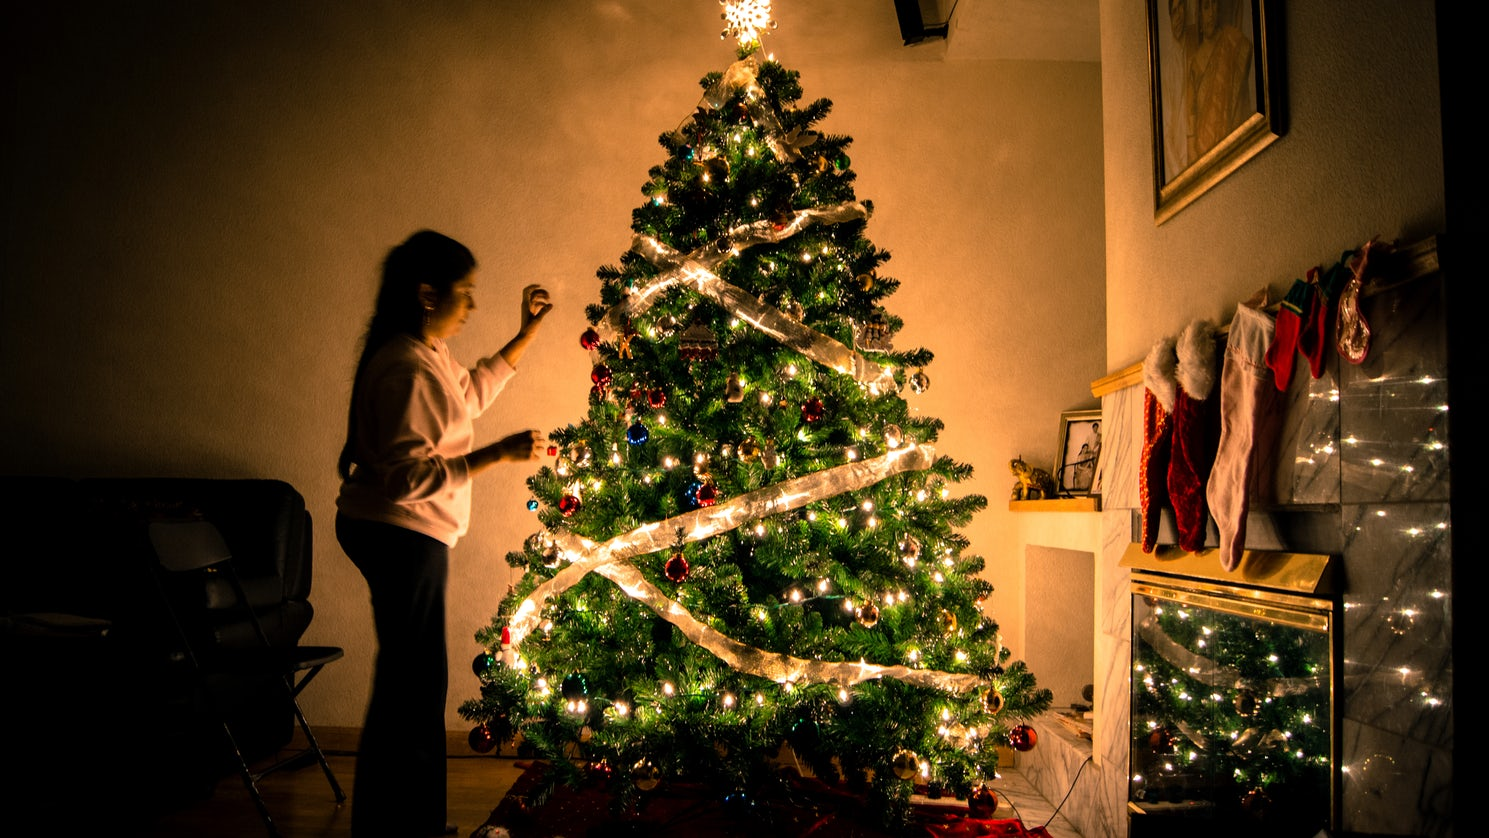 Decorating the Christmas tree is a tradition across the world